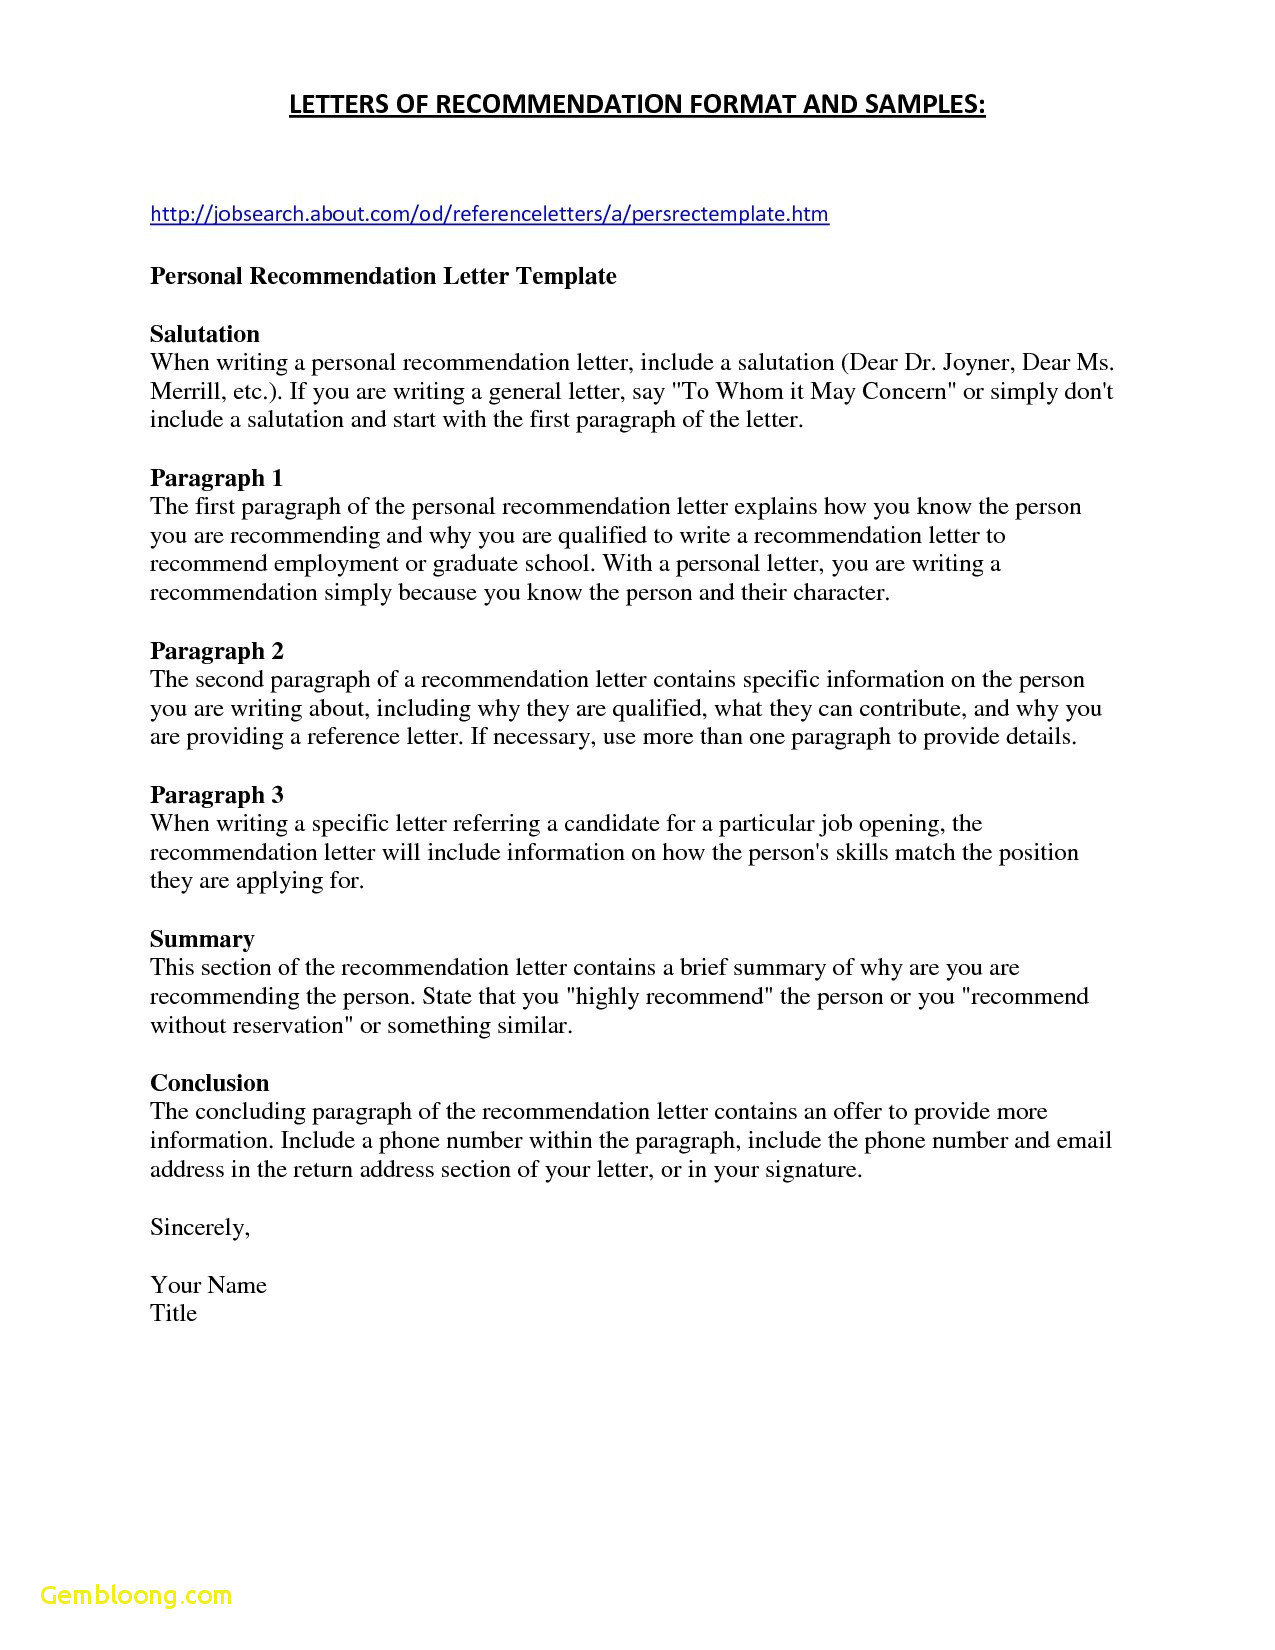 Dismissal Letter Template - General Labor Resume Examples Elegant Microsoft Resume Examples